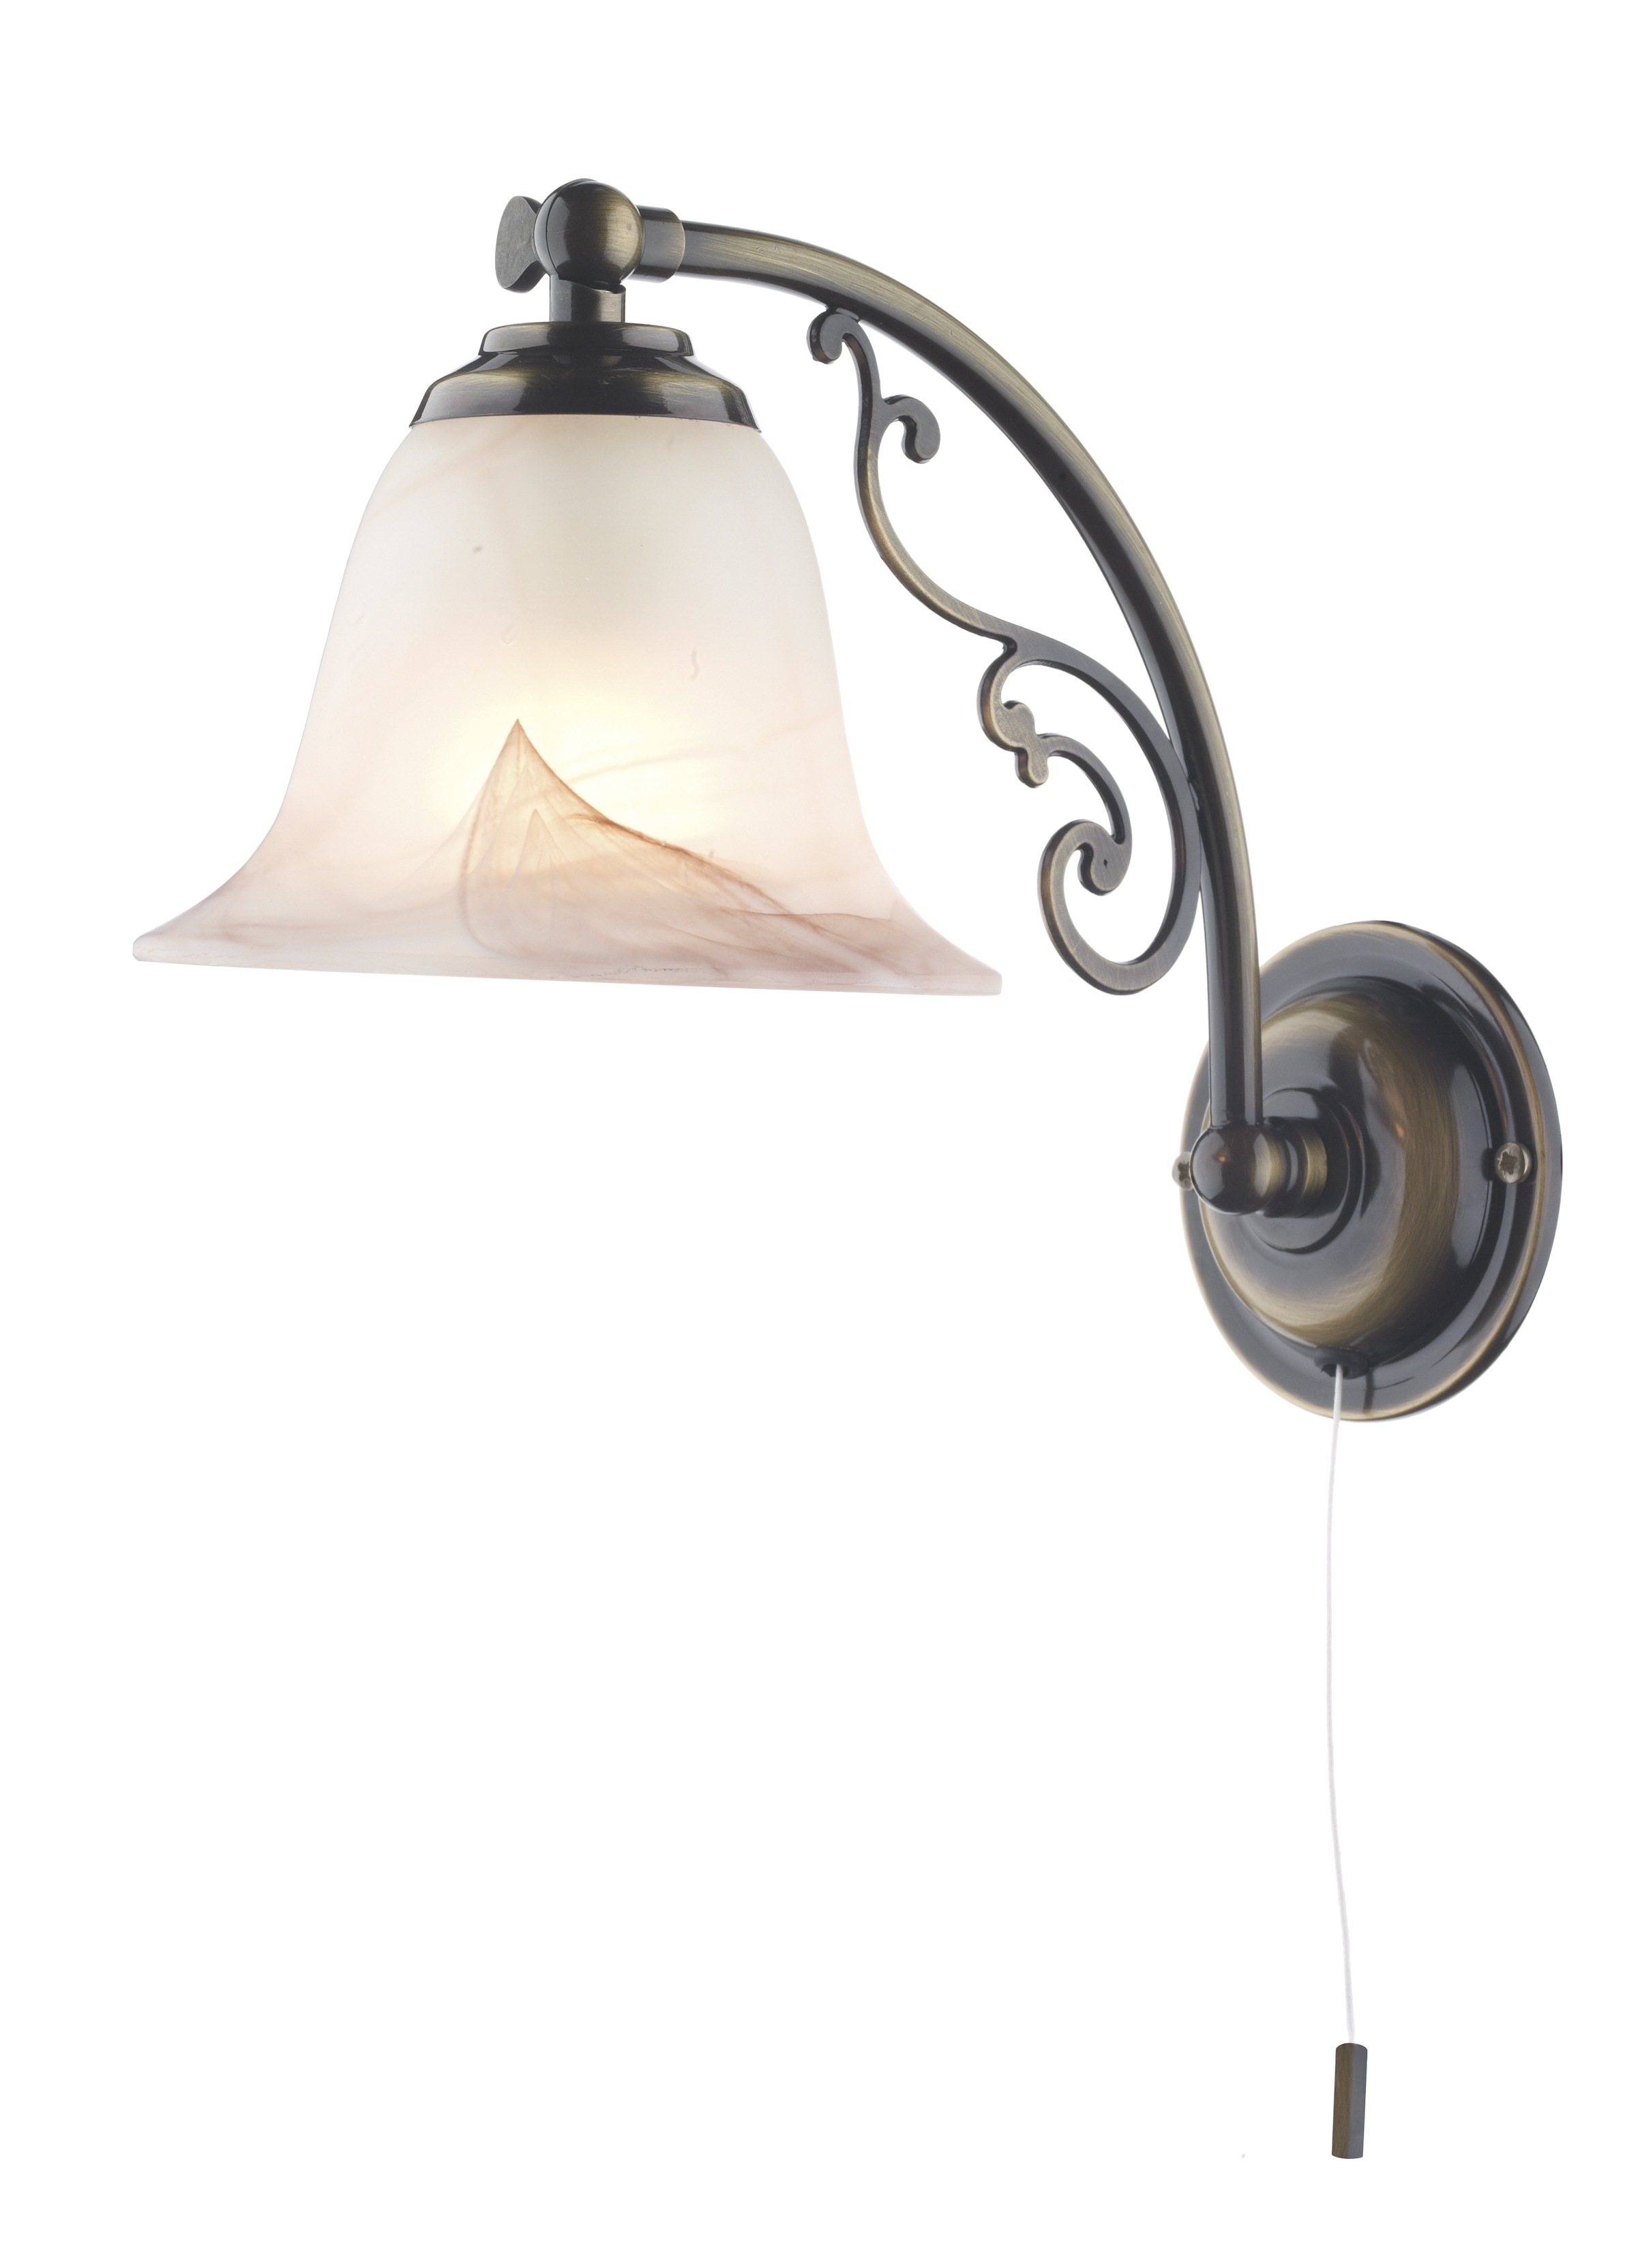 Widely Used Lamps : Ravishing Wall Night Lamps Decorative Led Exterior Wall Regarding Outdoor Wall Lights At Gumtree (View 20 of 20)